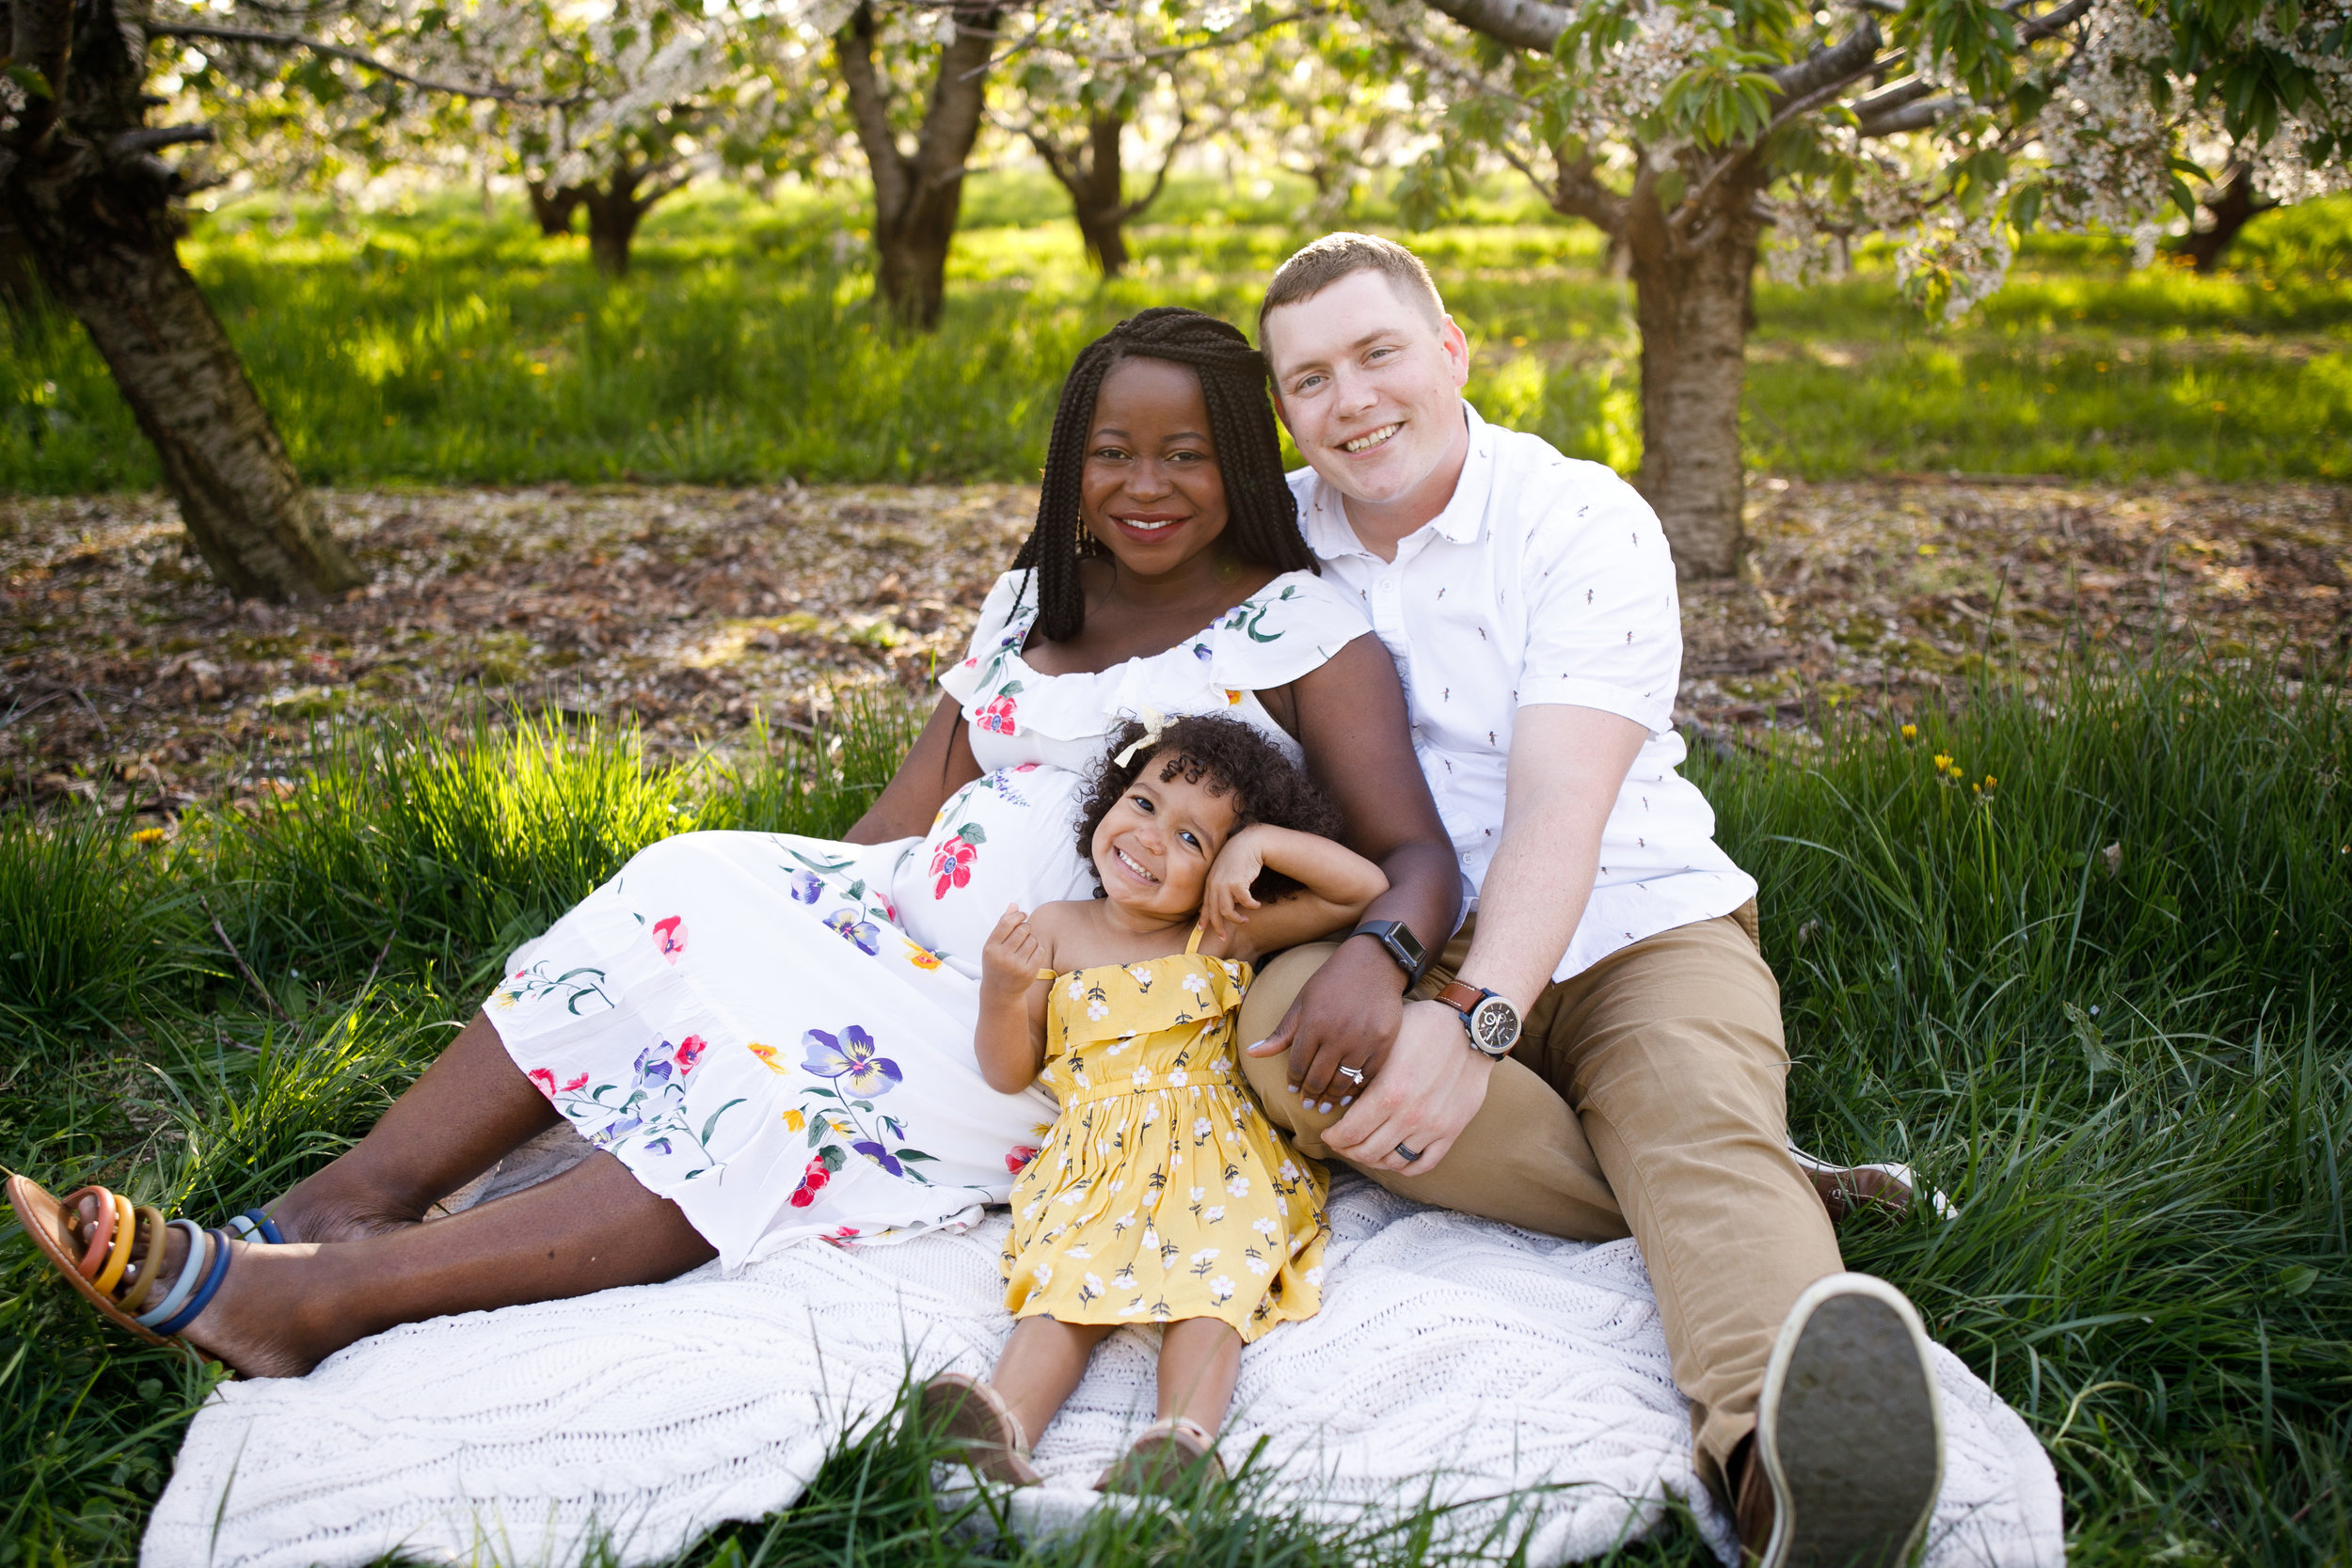 Grand Rapids family photographer - j darling photo - jessica darling - grand rapids photographer - family session - apple blossoms - sparta - michigan photographer013.jpg